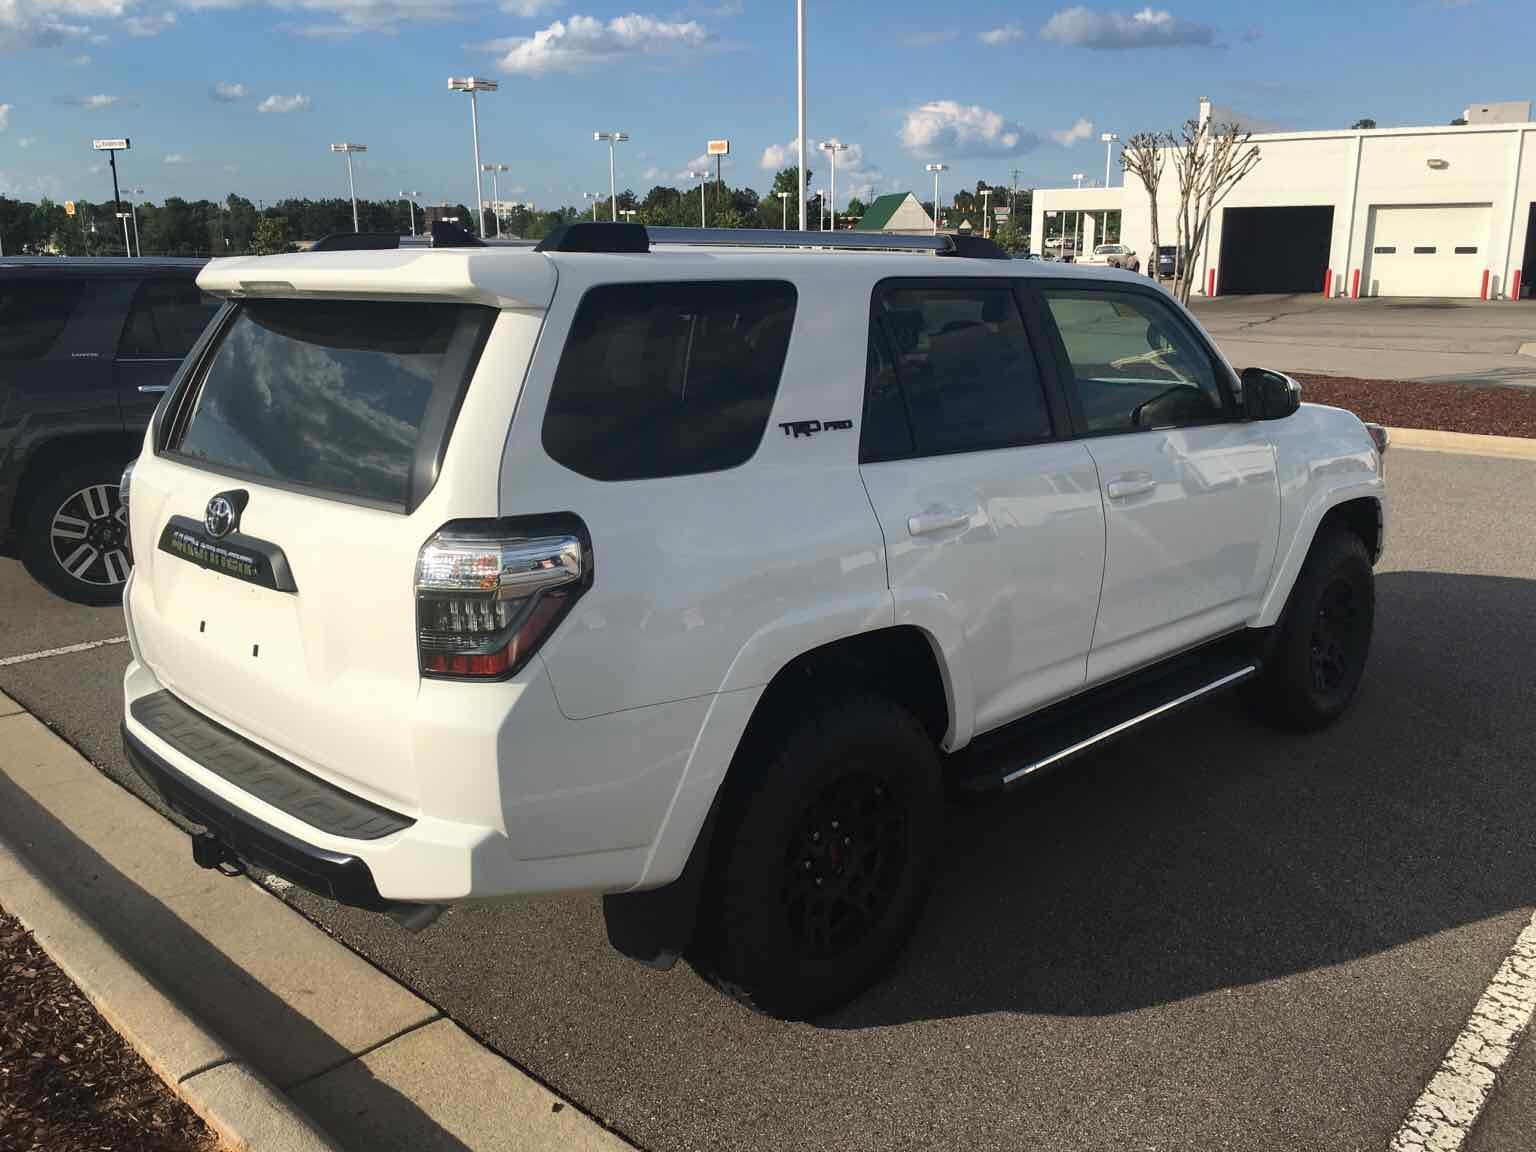 for sale vehicles page 4 toyota 4runner forum. Black Bedroom Furniture Sets. Home Design Ideas